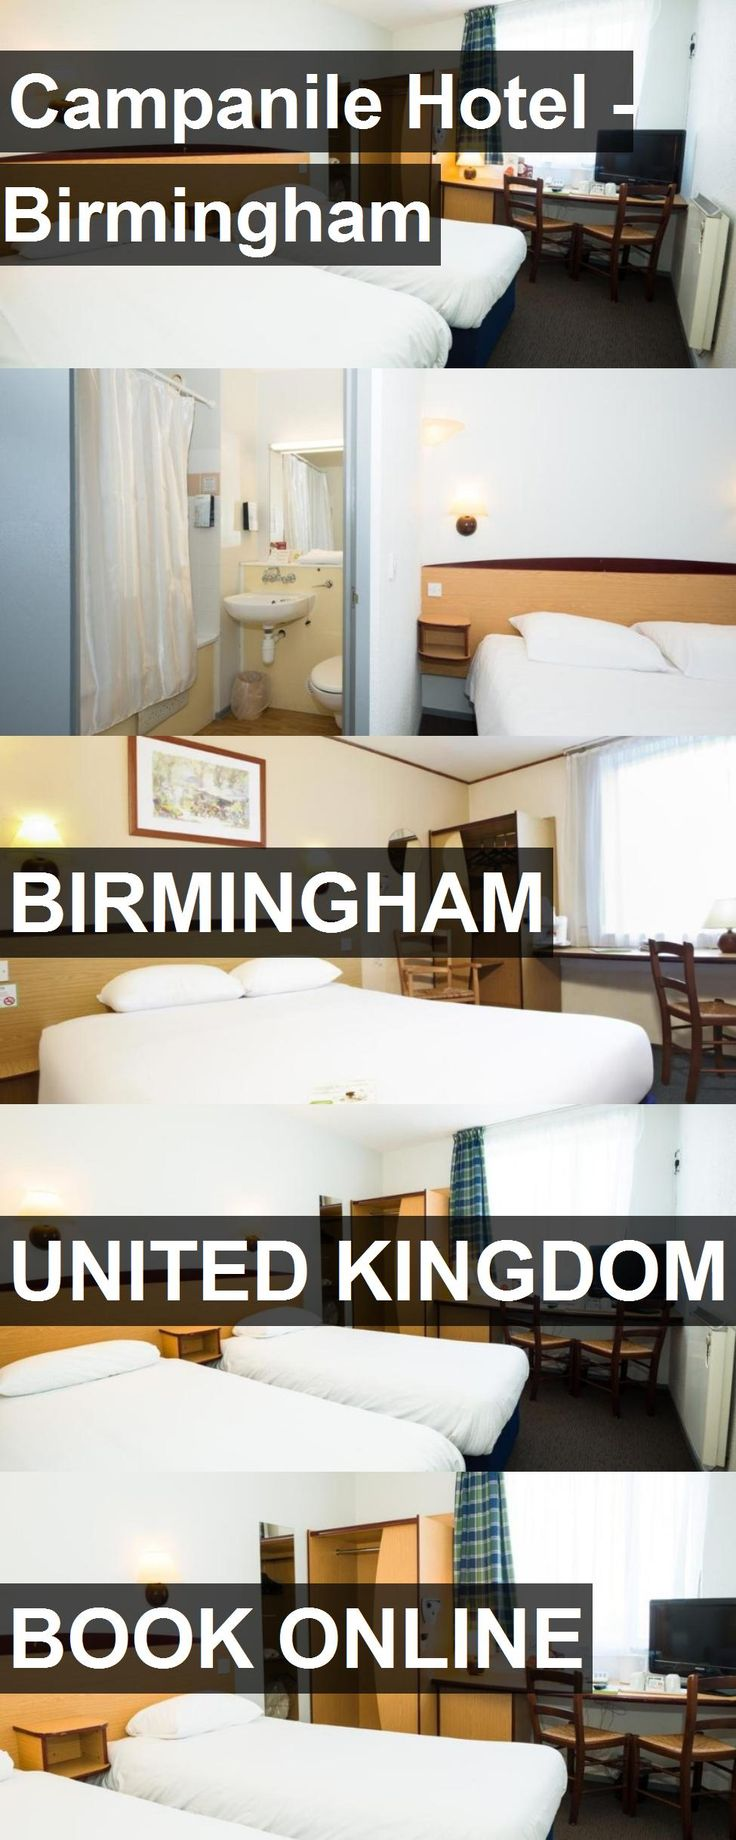 Campanile Hotel - Birmingham in Birmingham, United Kingdom. For more information, photos, reviews and best prices please follow the link. #UnitedKingdom #Birmingham #travel #vacation #hotel